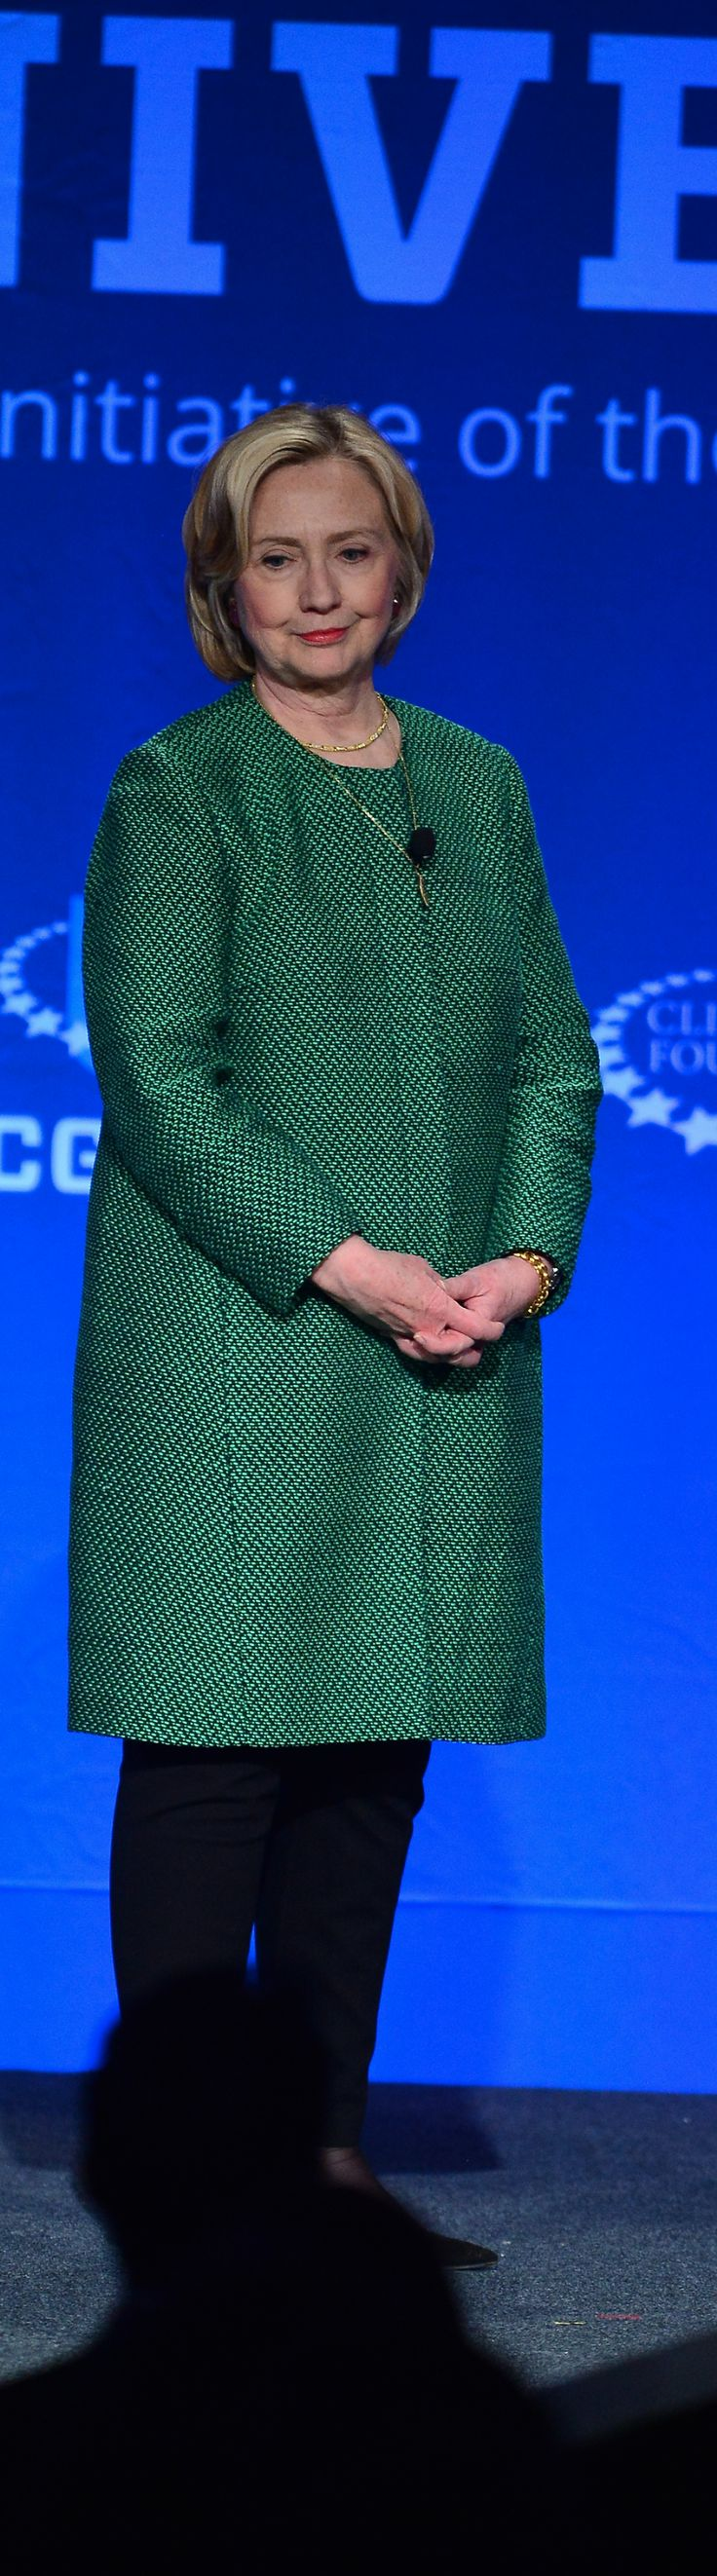 Hillary Clinton's Style Is So Much More Than Pantsuits